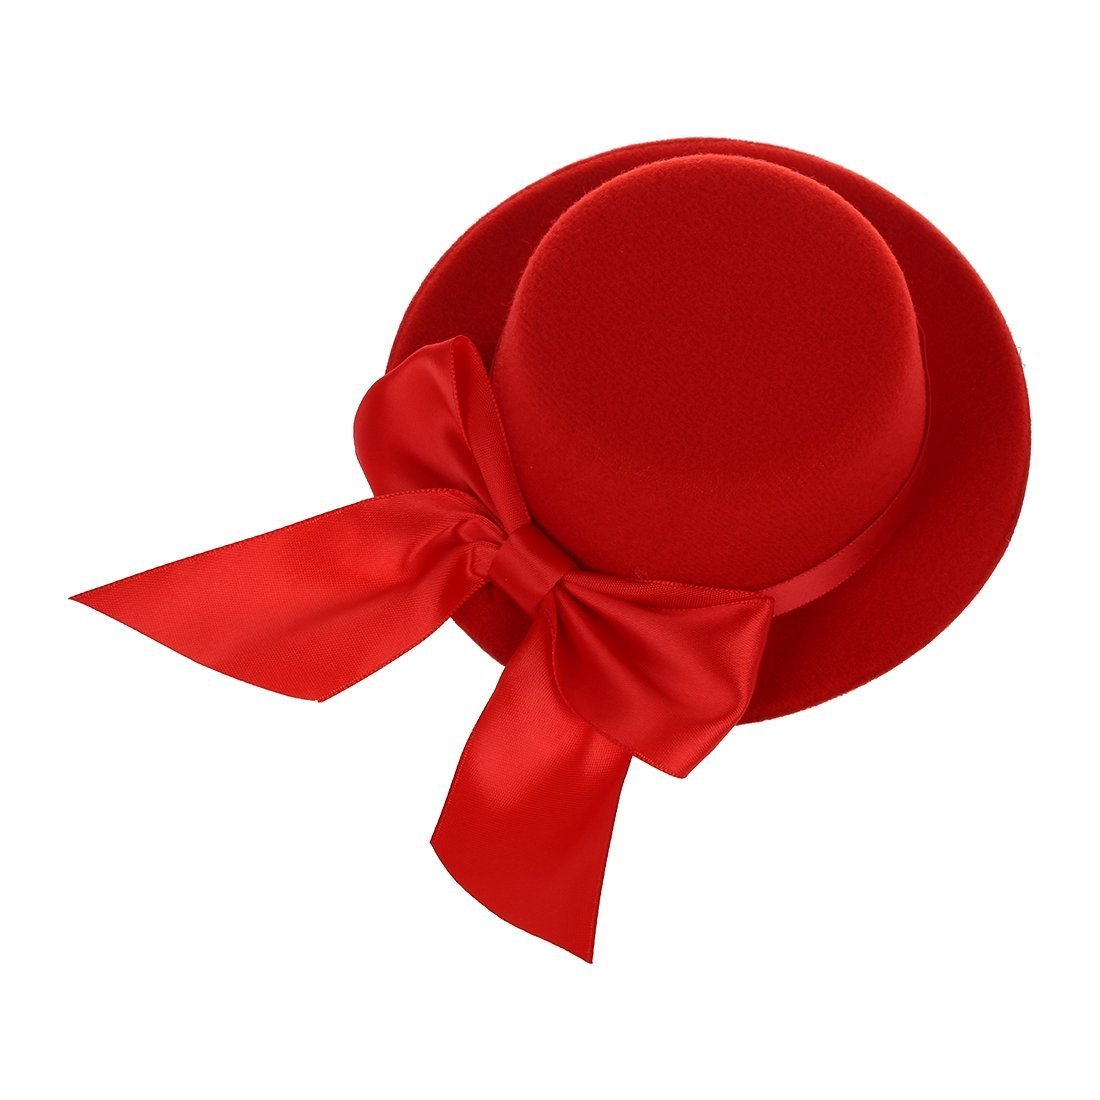 eefda9a34 SODIAL (R)Ladies Mini Top Hat Fascinator Burlesque Millinery w/ Bowknot -  Red